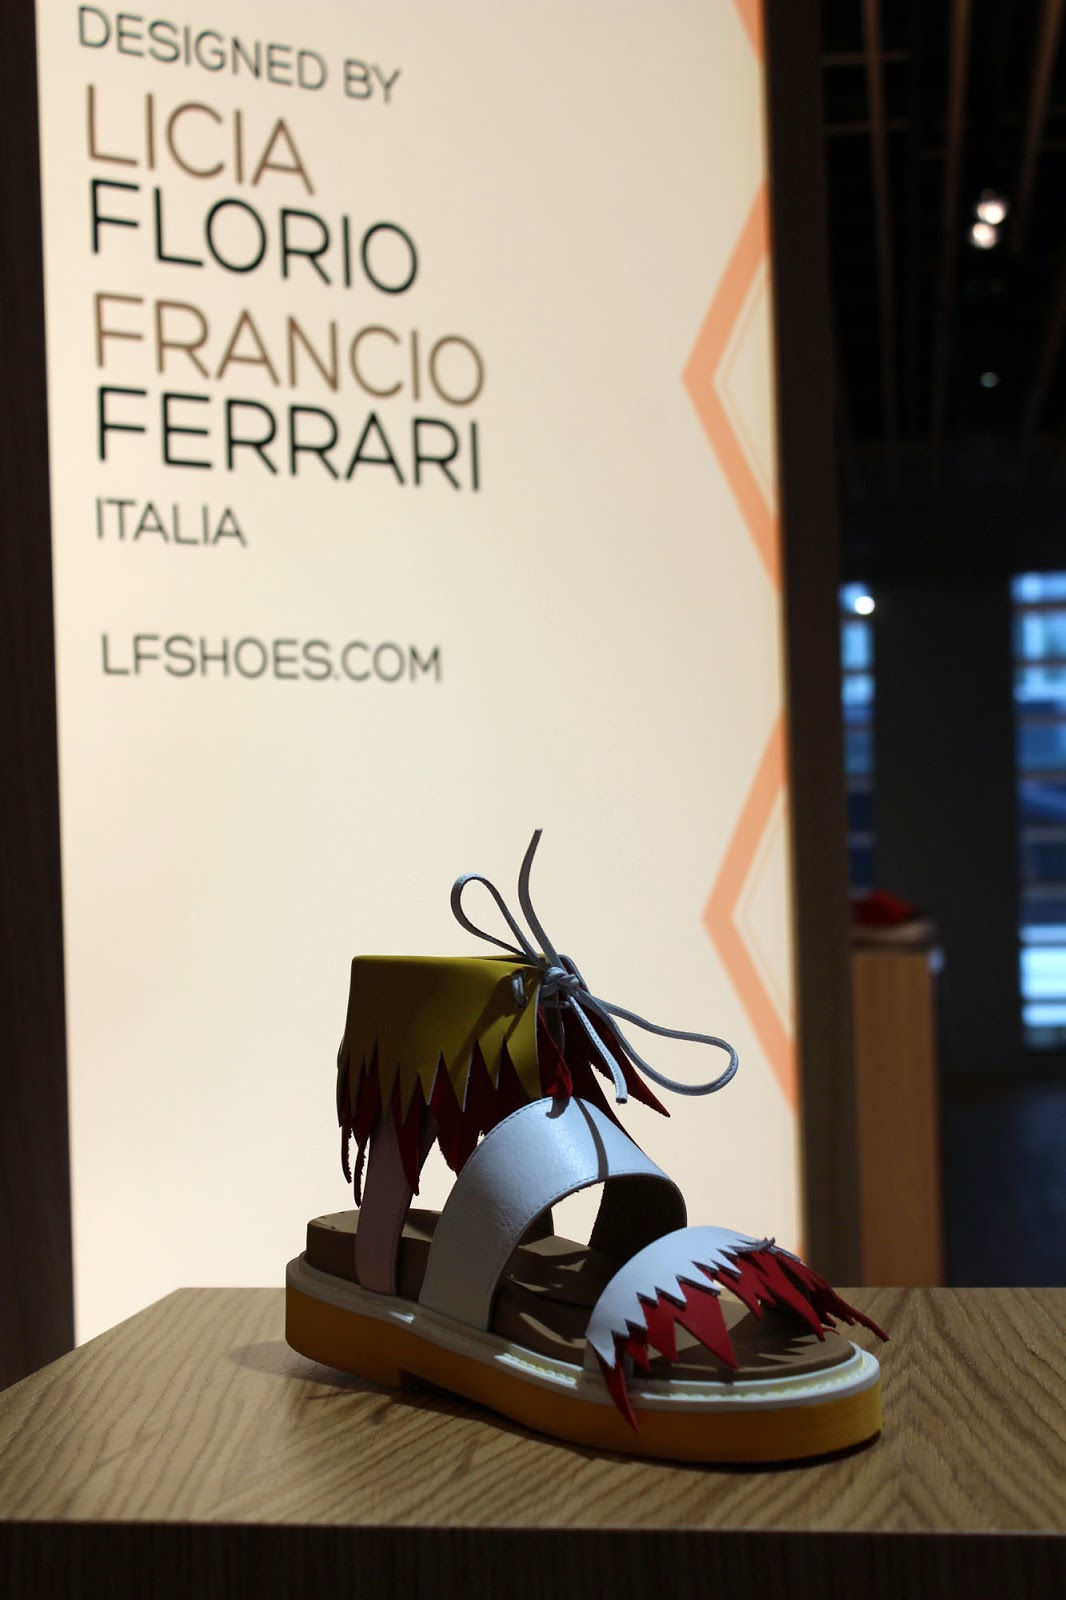 Eniwhere Fashion - Fashion Hub Market - L'F Shoes